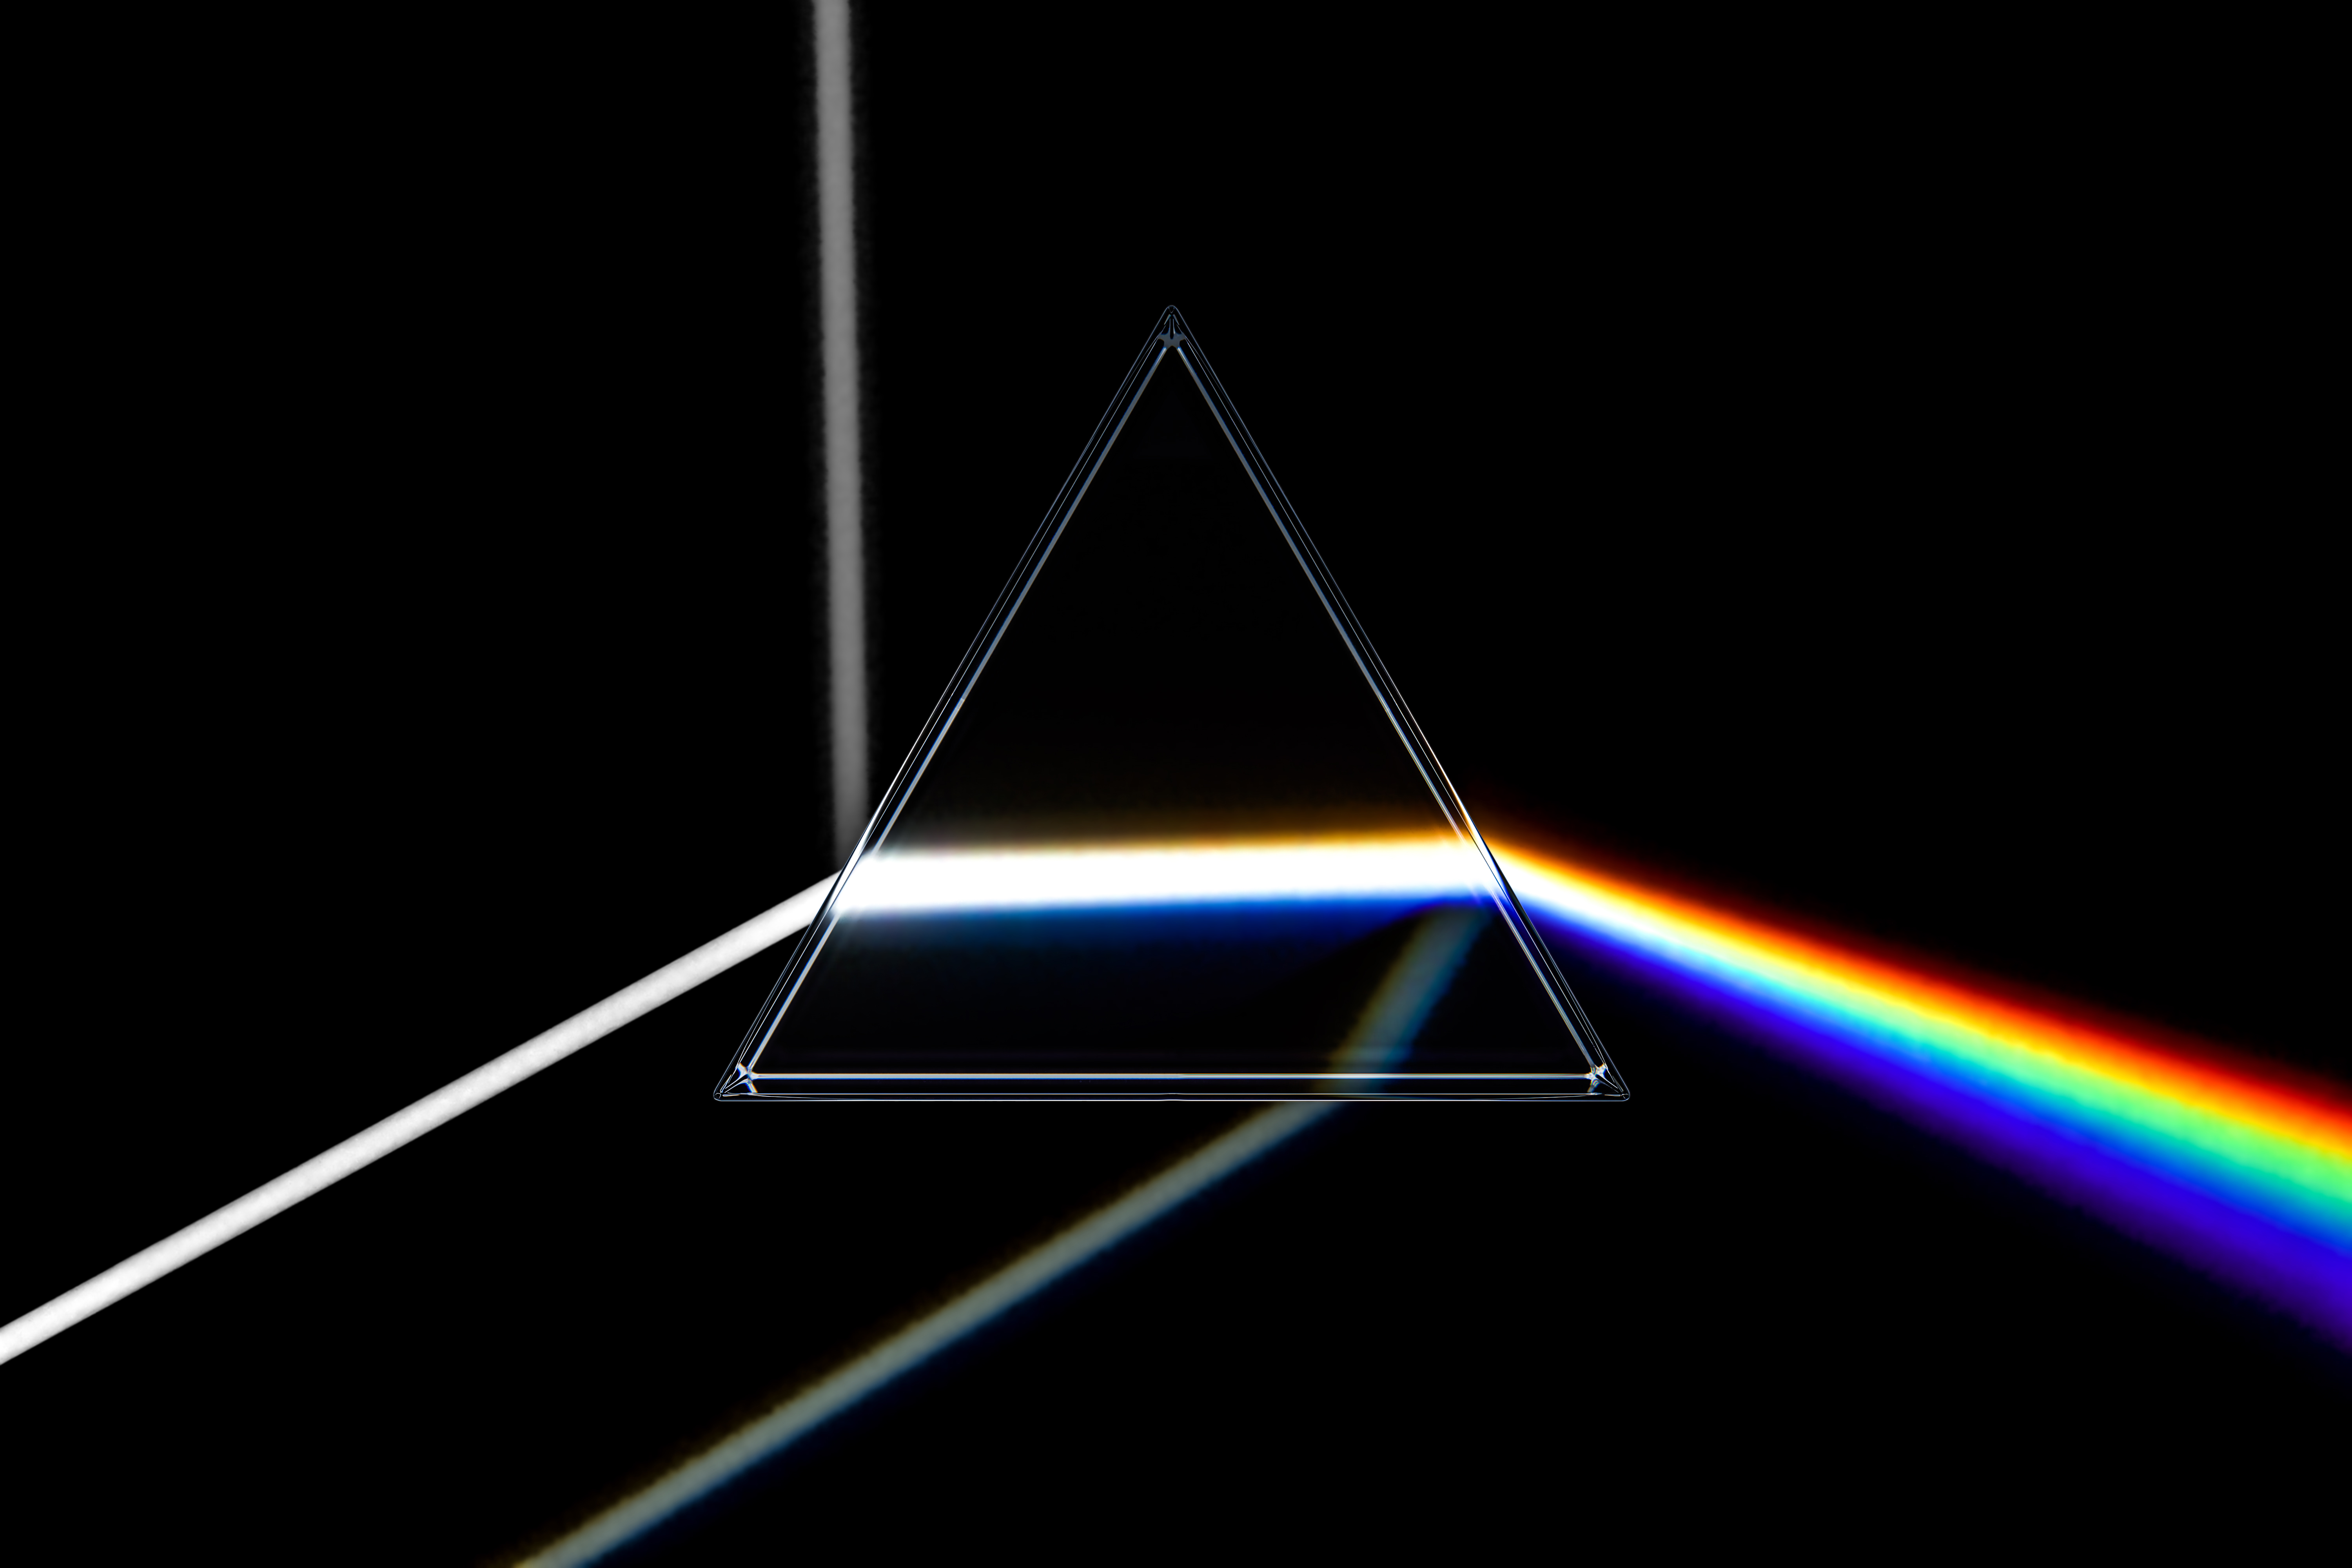 What Happens to a White Light When It Passes Through a Prism and Why?